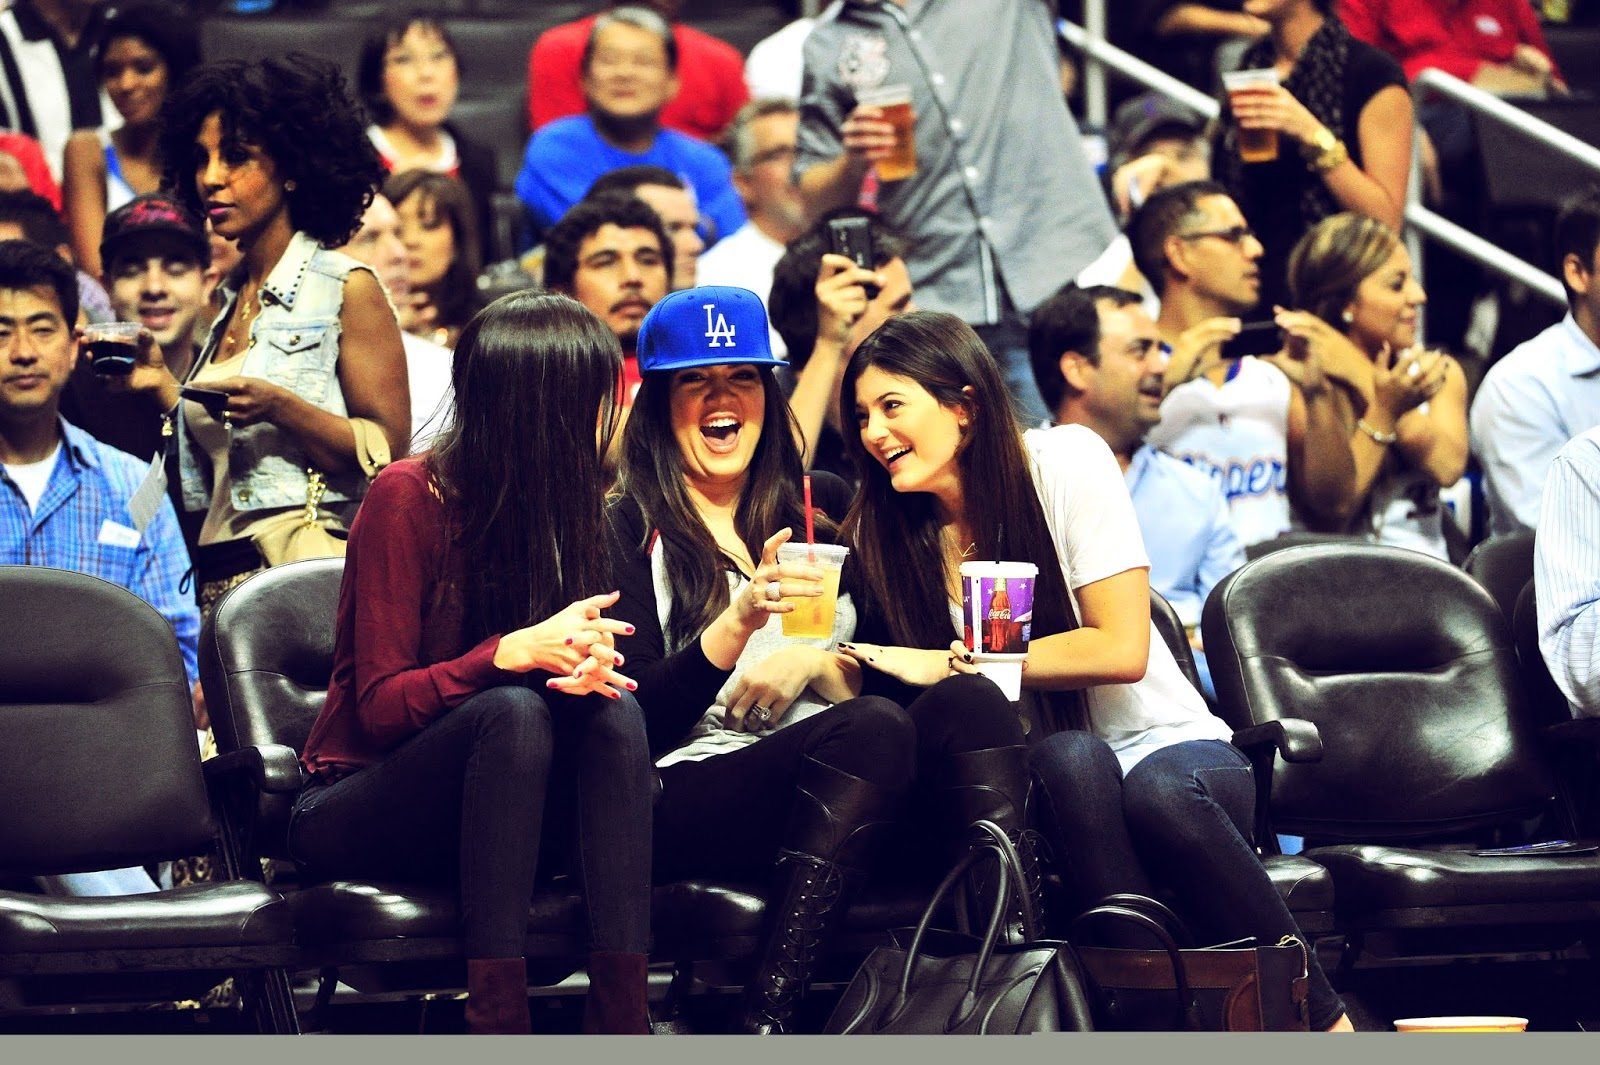 02 - Watching The Los Angeles Clippers Game on October 17, 2012